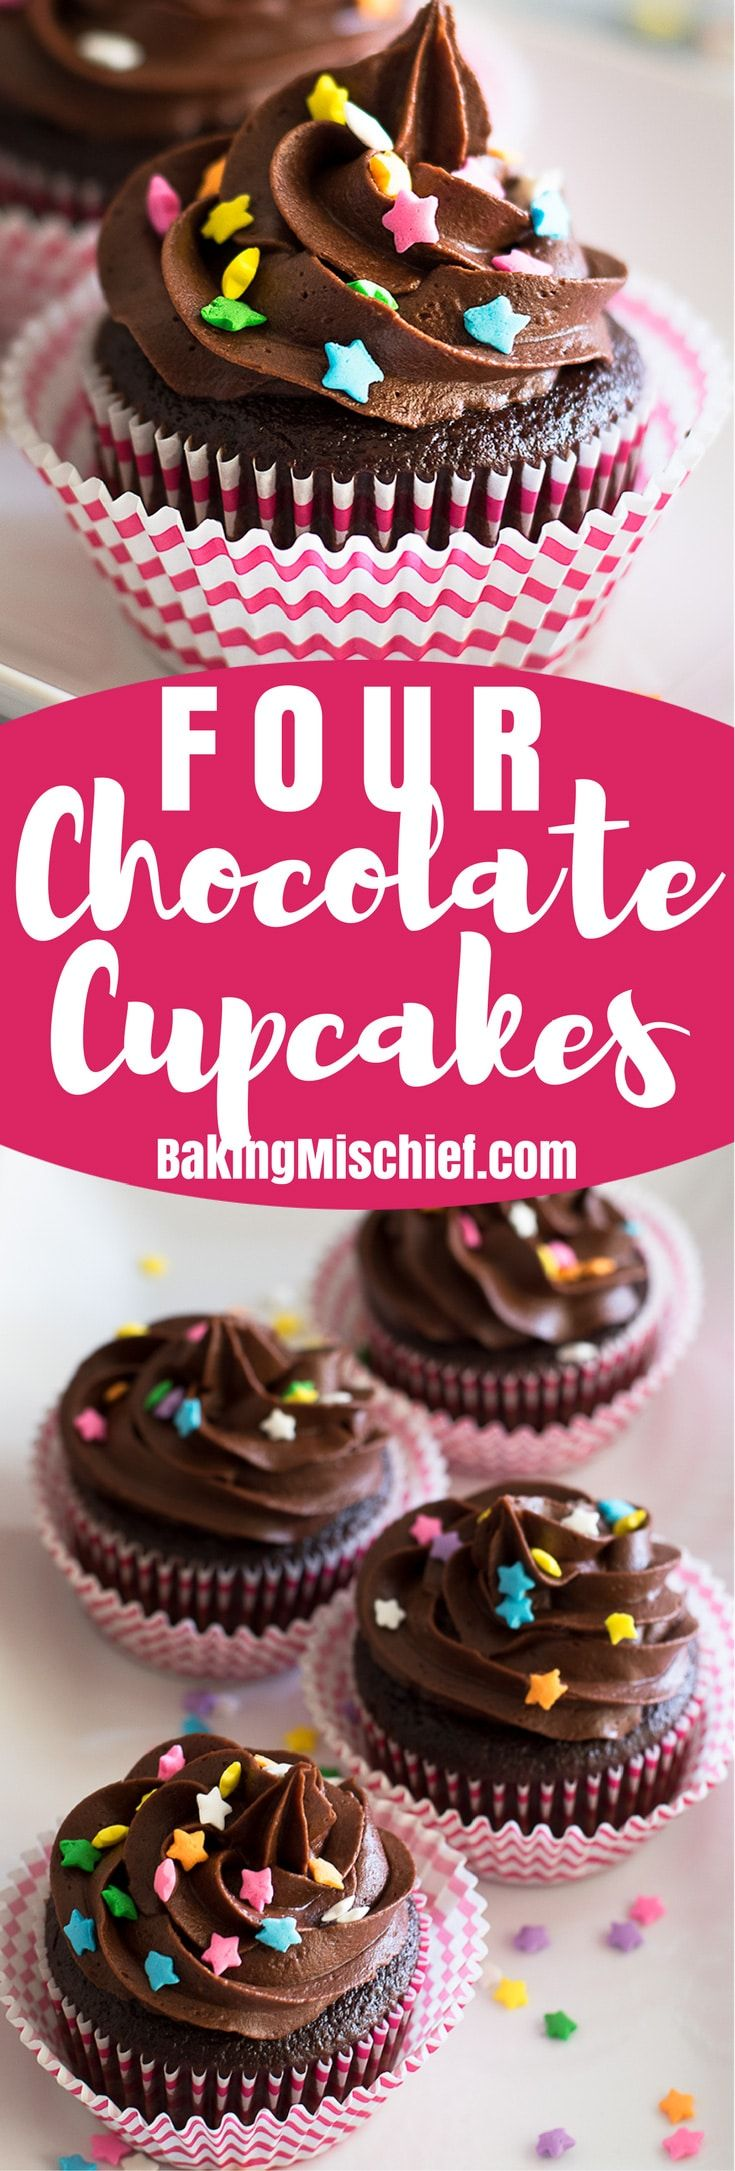 Small-batch Chocolate Chocolate Cupcakes with Chocolate Buttercream: rich, delicious, and amazing! | Chocolate desserts | Small-batch Cupcakes | Small-batch Desserts |